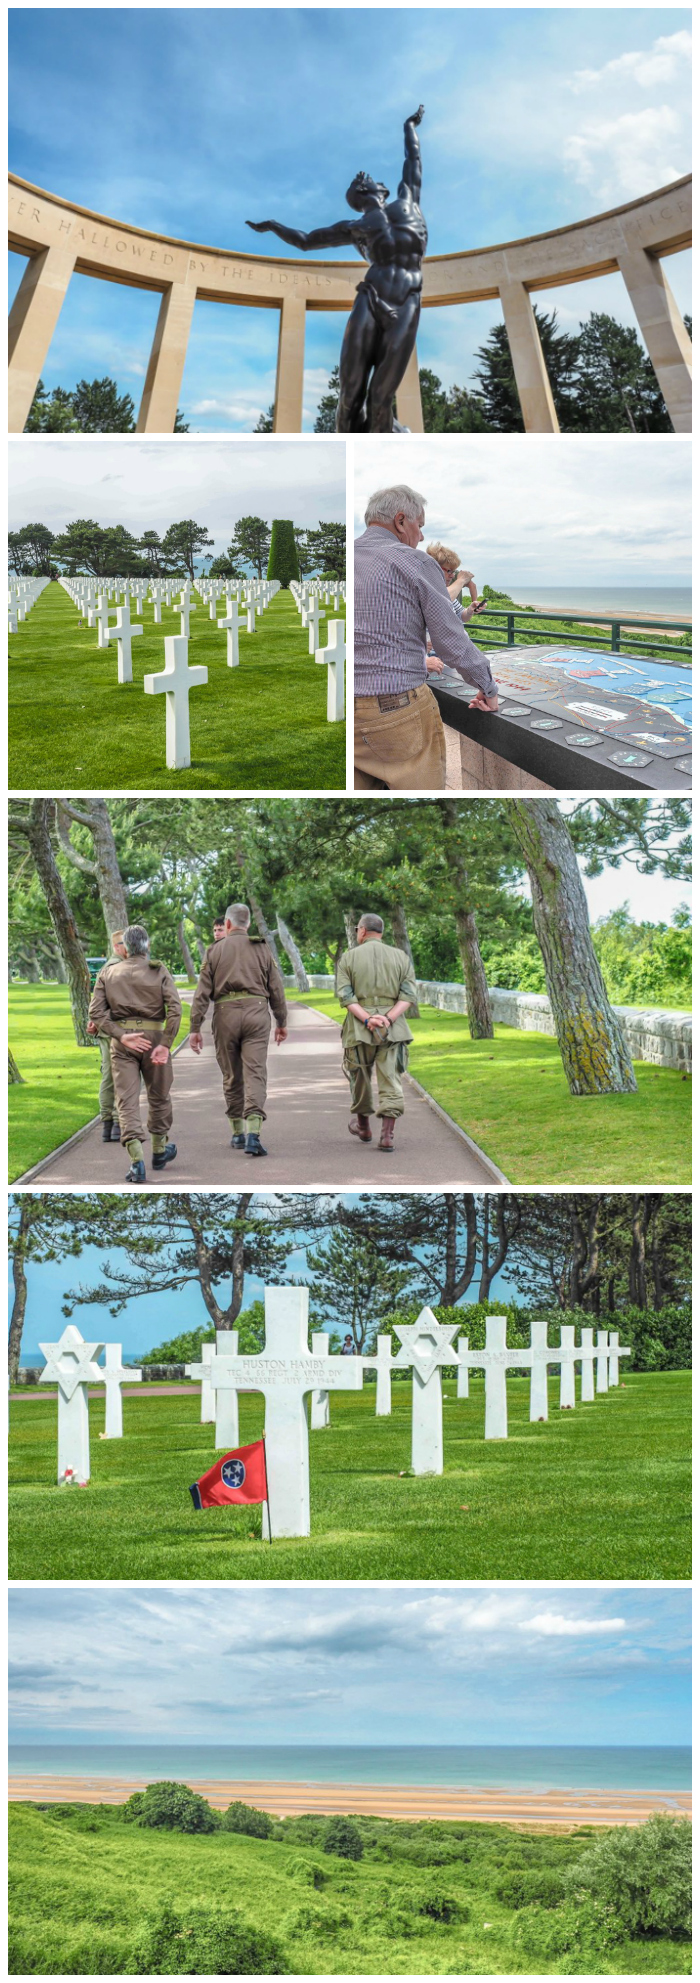 memorials, soldiers, crosses at Normandy American Cemetery overlooking Omaha Beach | 7 of the Best D-Day Sites to Visit in Normandy If You Have Just 1 Day | Normandy, France WWII sites and World War II history | #wwii #normandy #dday #omahabeach